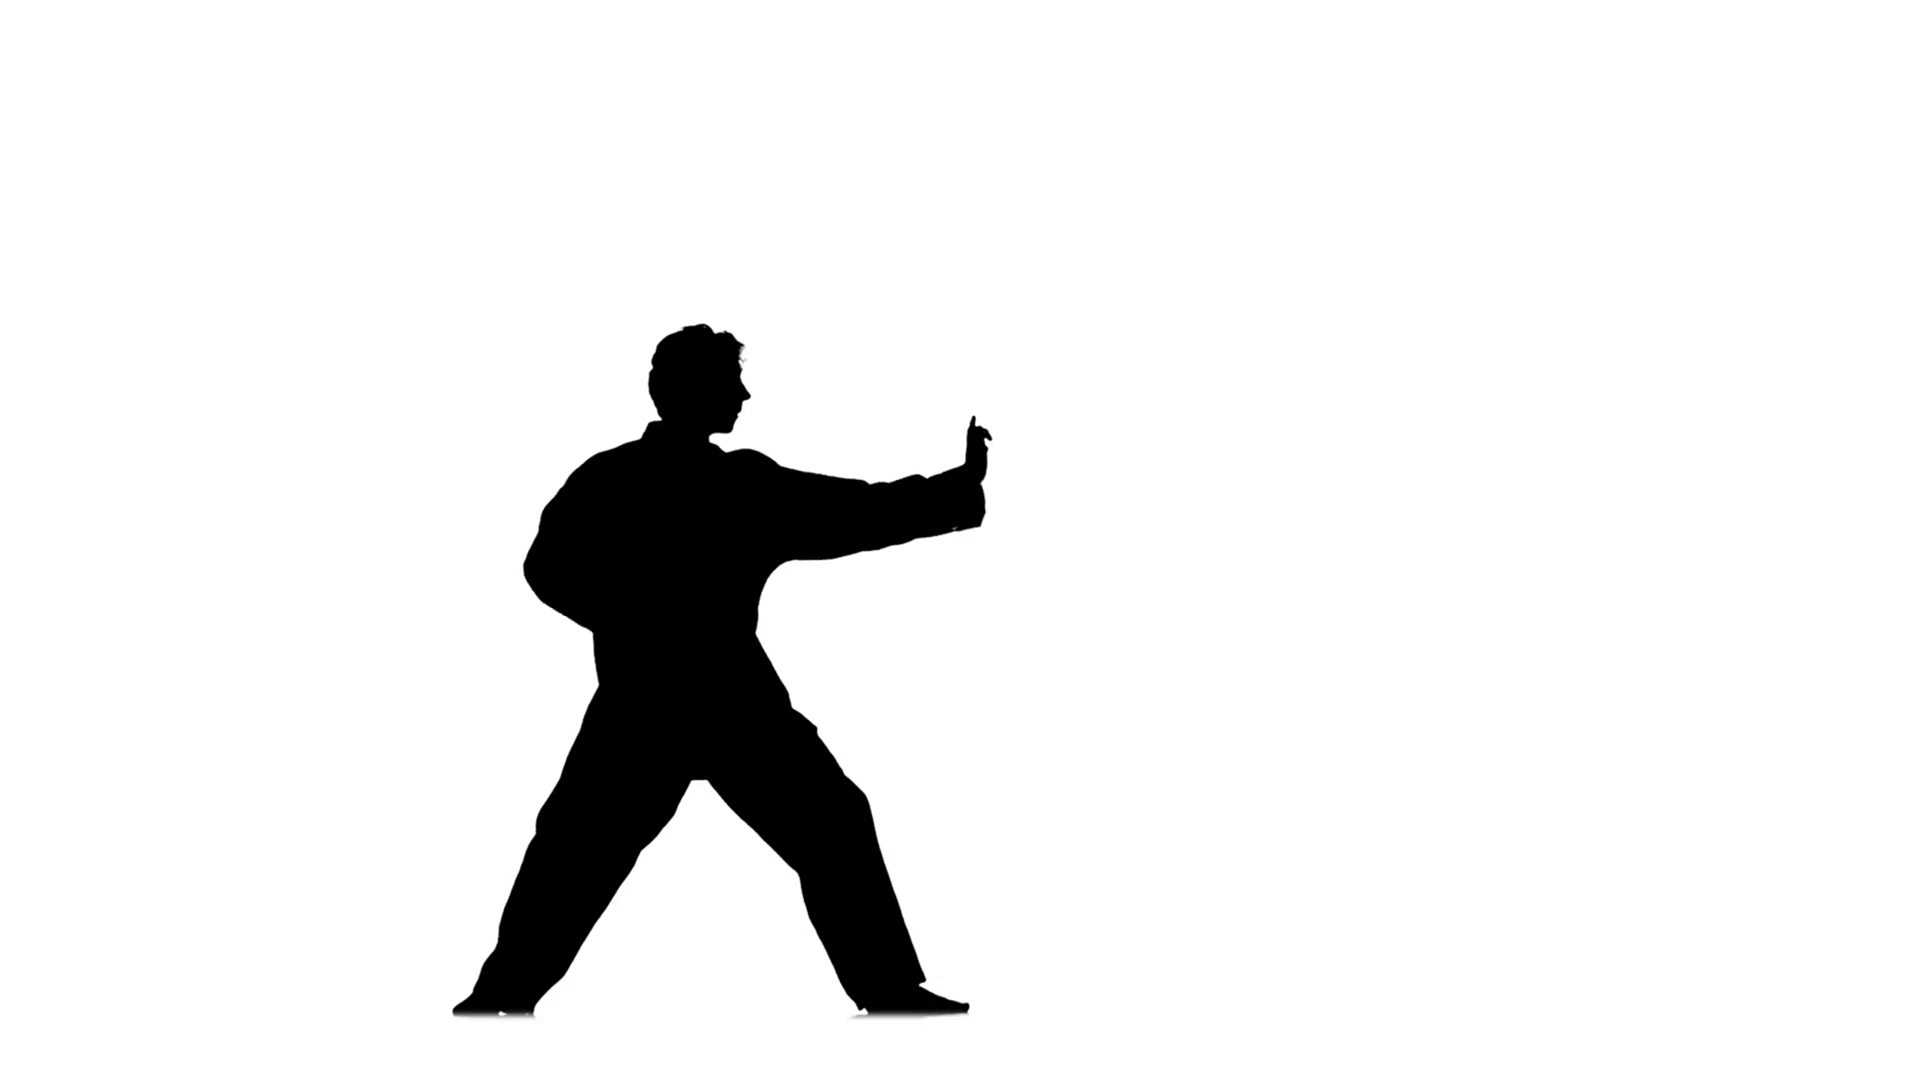 1920x1080 Kung Fu, Karate, Martial Arts, Silhouette, Slow Motion. Kung Fu